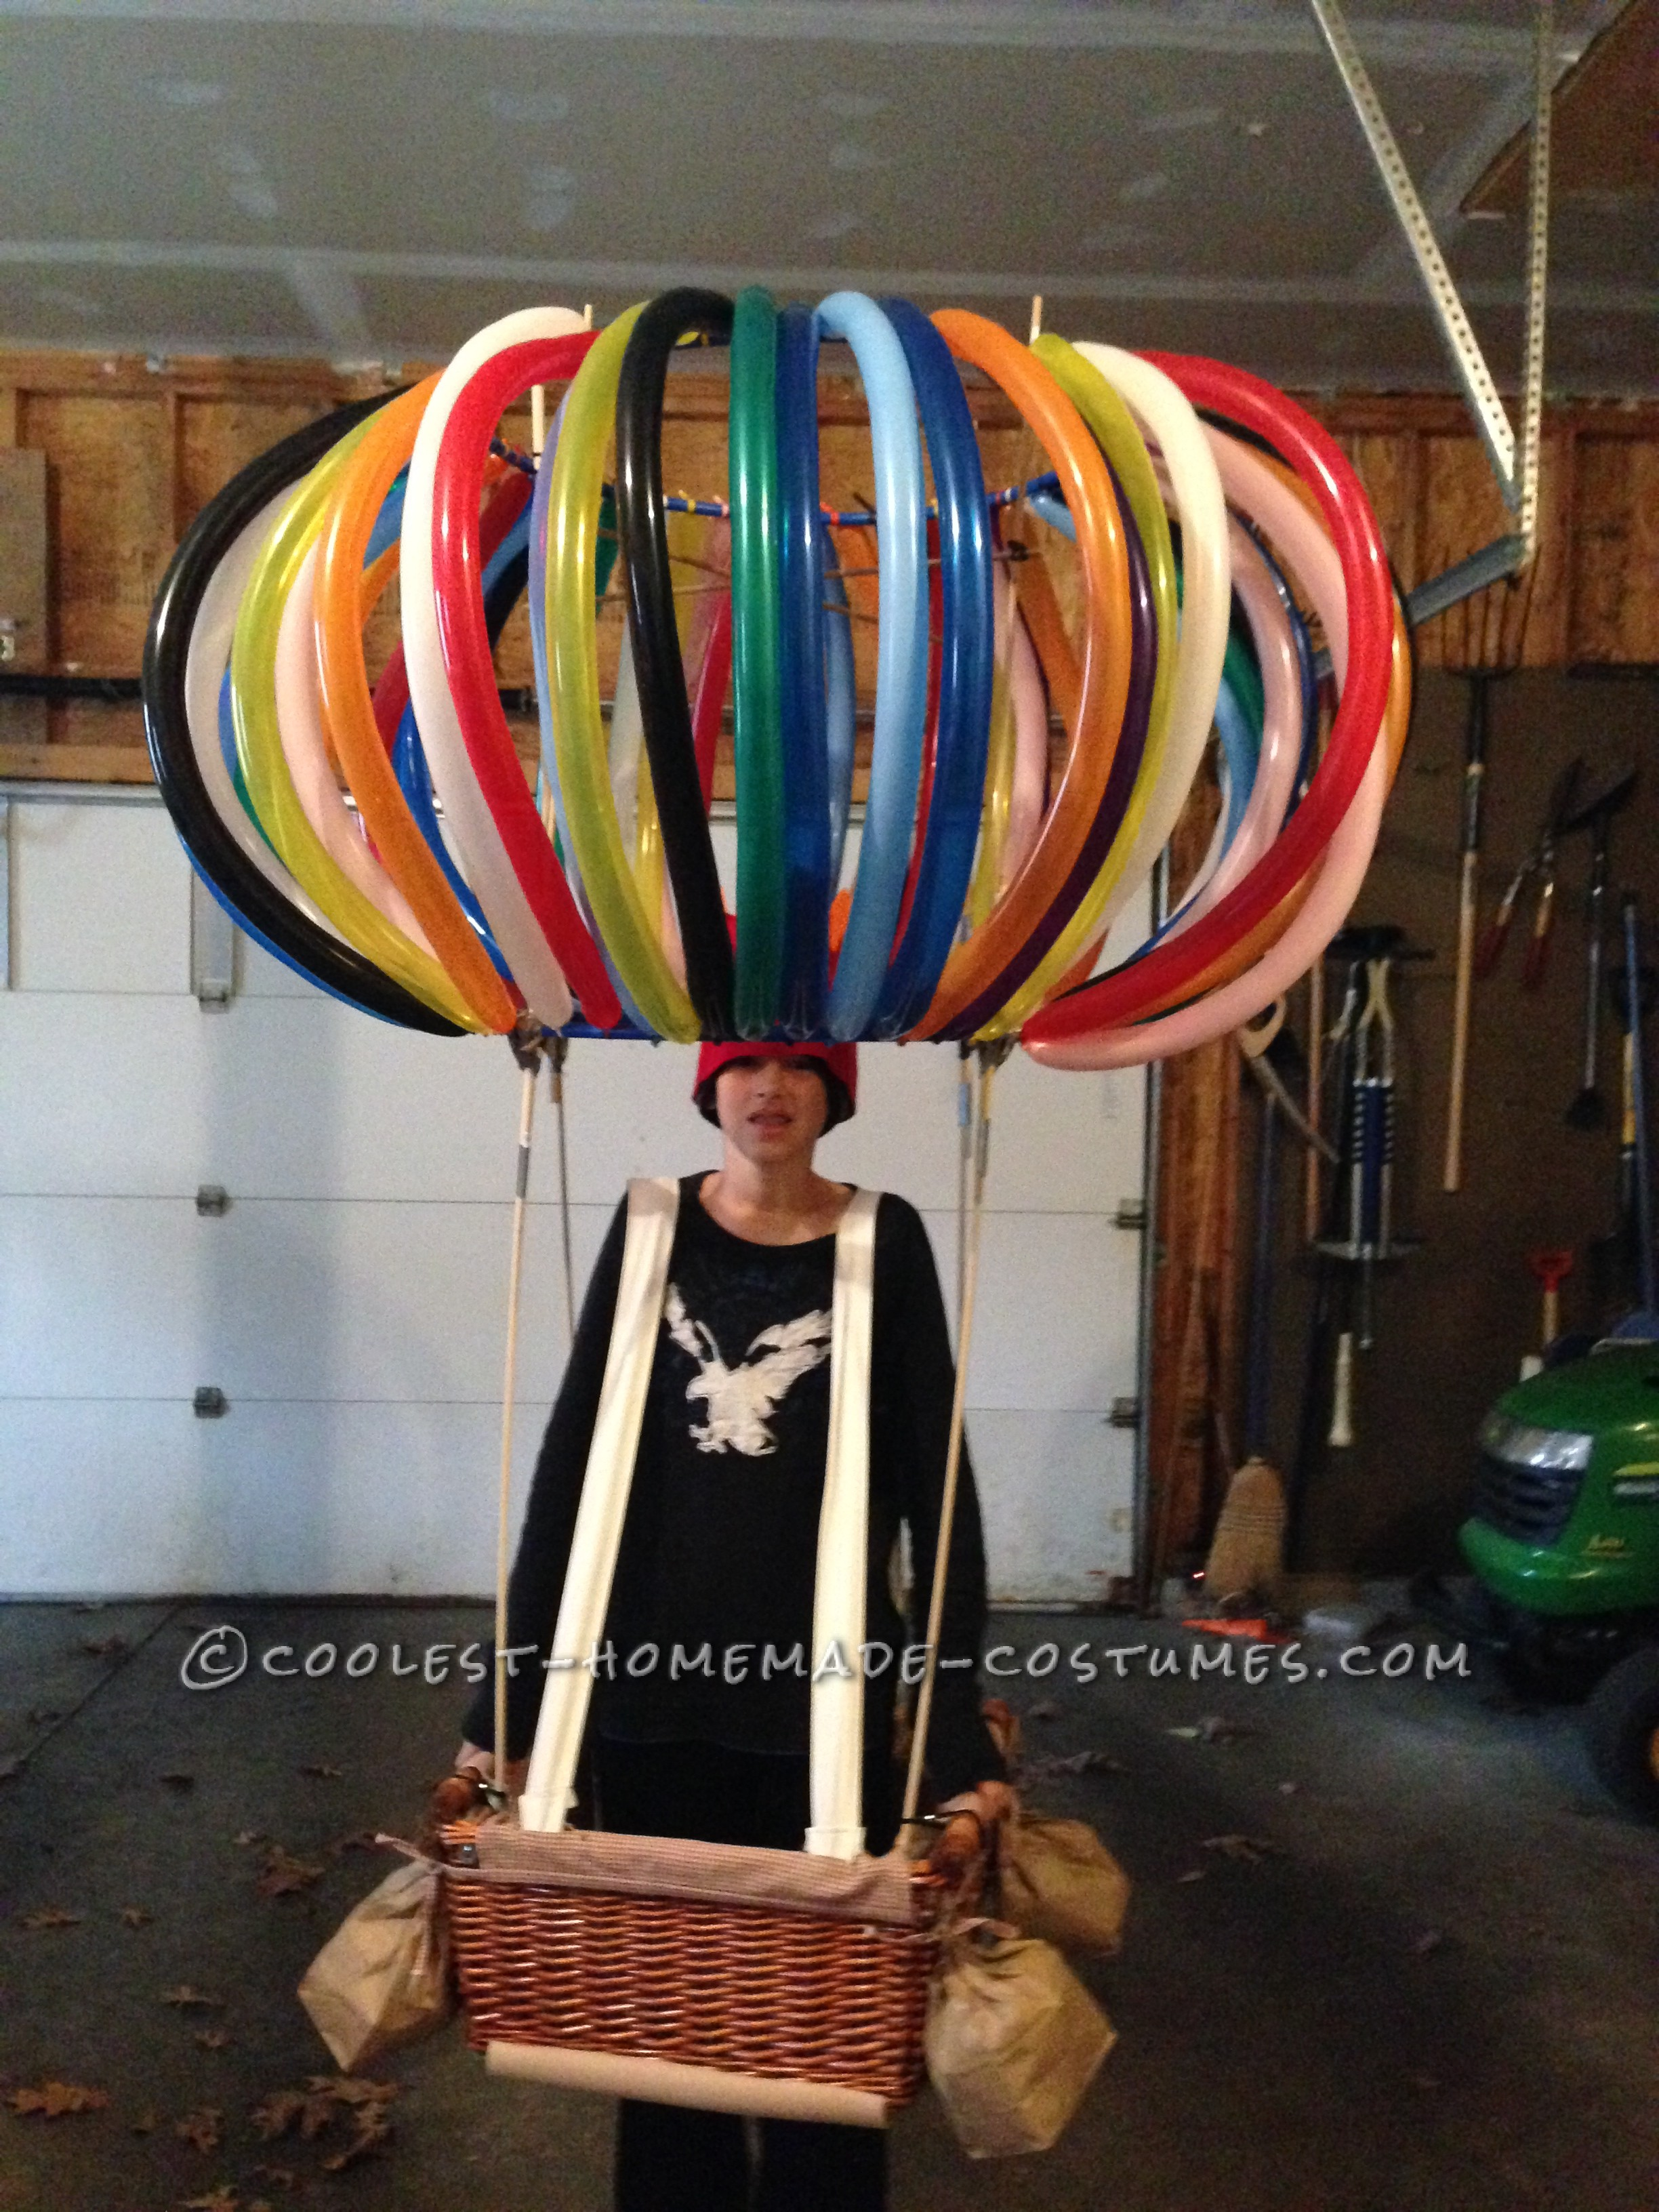 Coolest Hot Air Balloon Costume - Rise